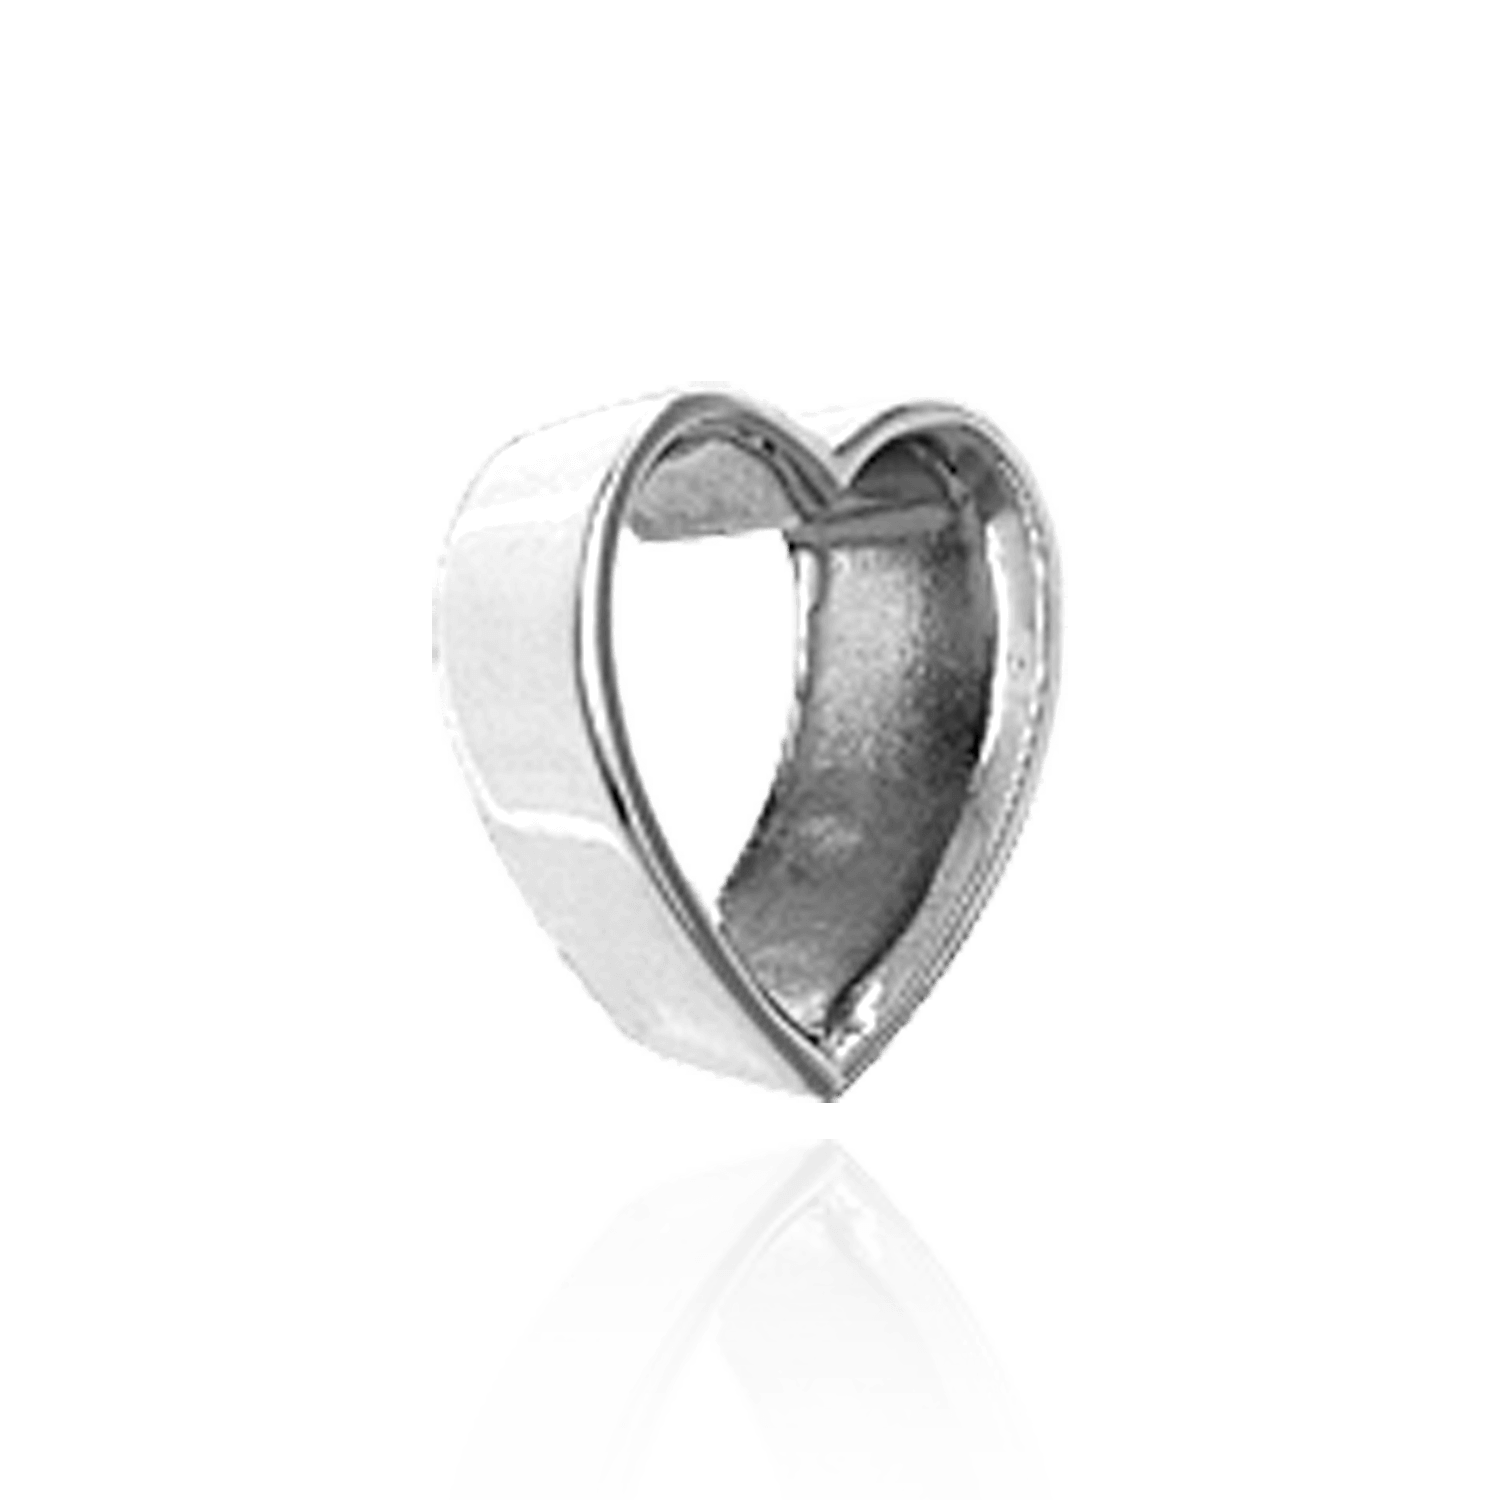 Heart Shape Tapered Bezels in Sterling Silver (3.5 x 3.0 mm - 12.5 x 11.0 mm)